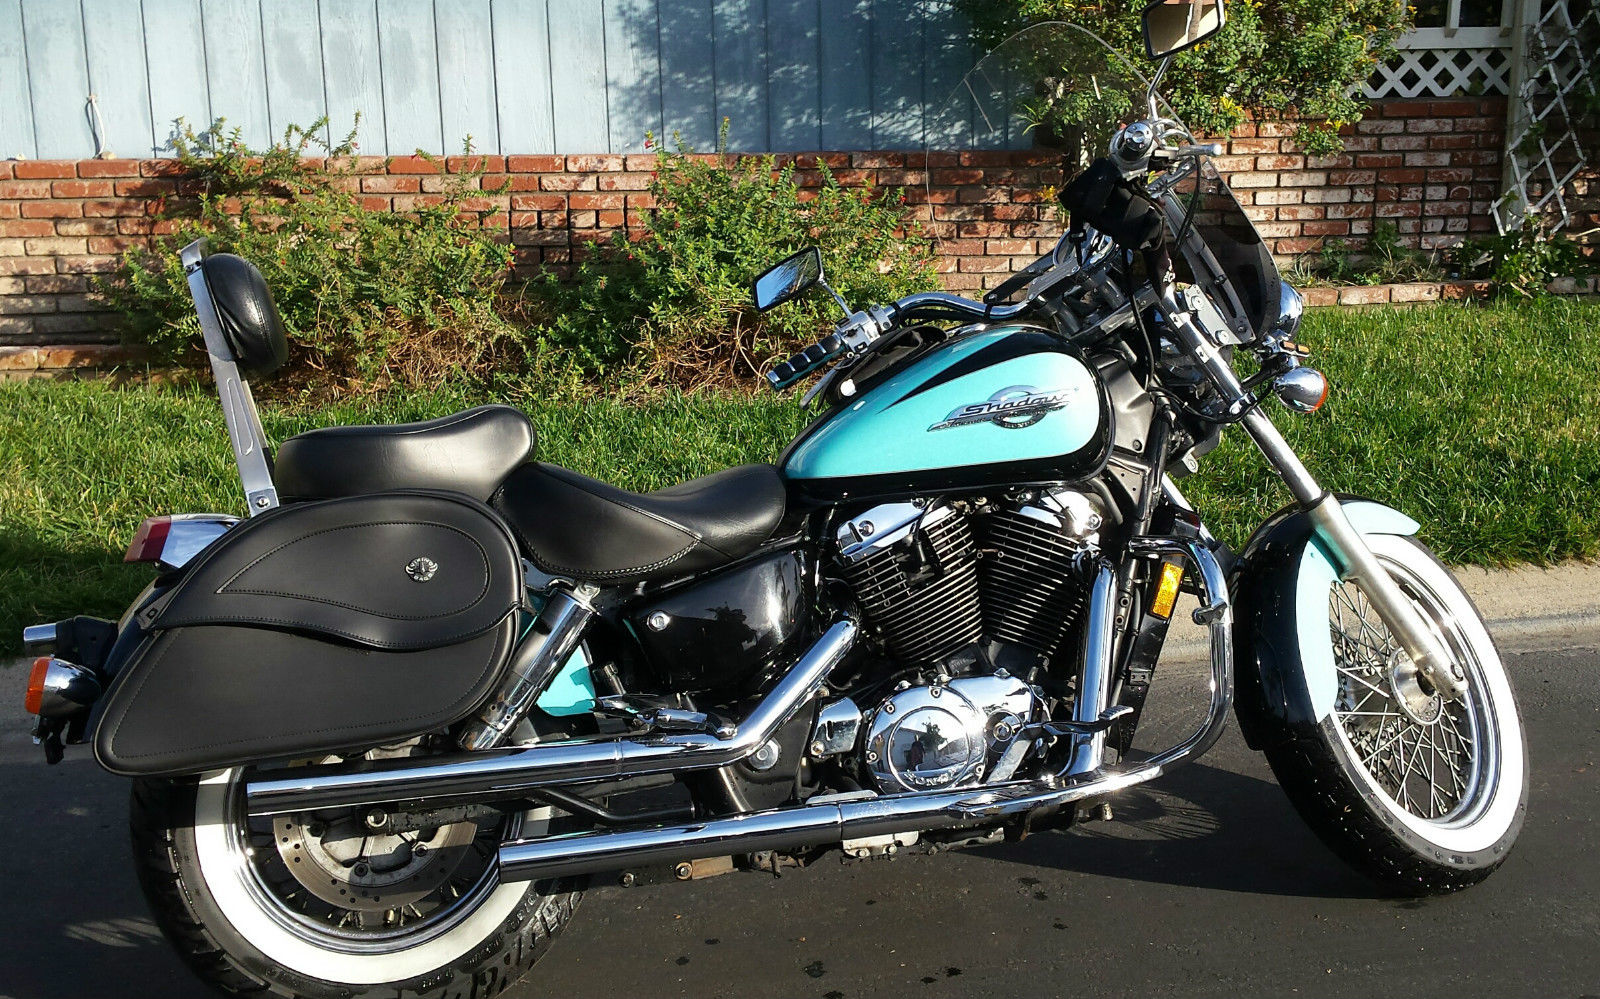 HONDA SHADOW AMERICAN CLASSIC EDITION 1100 MADE IN USA